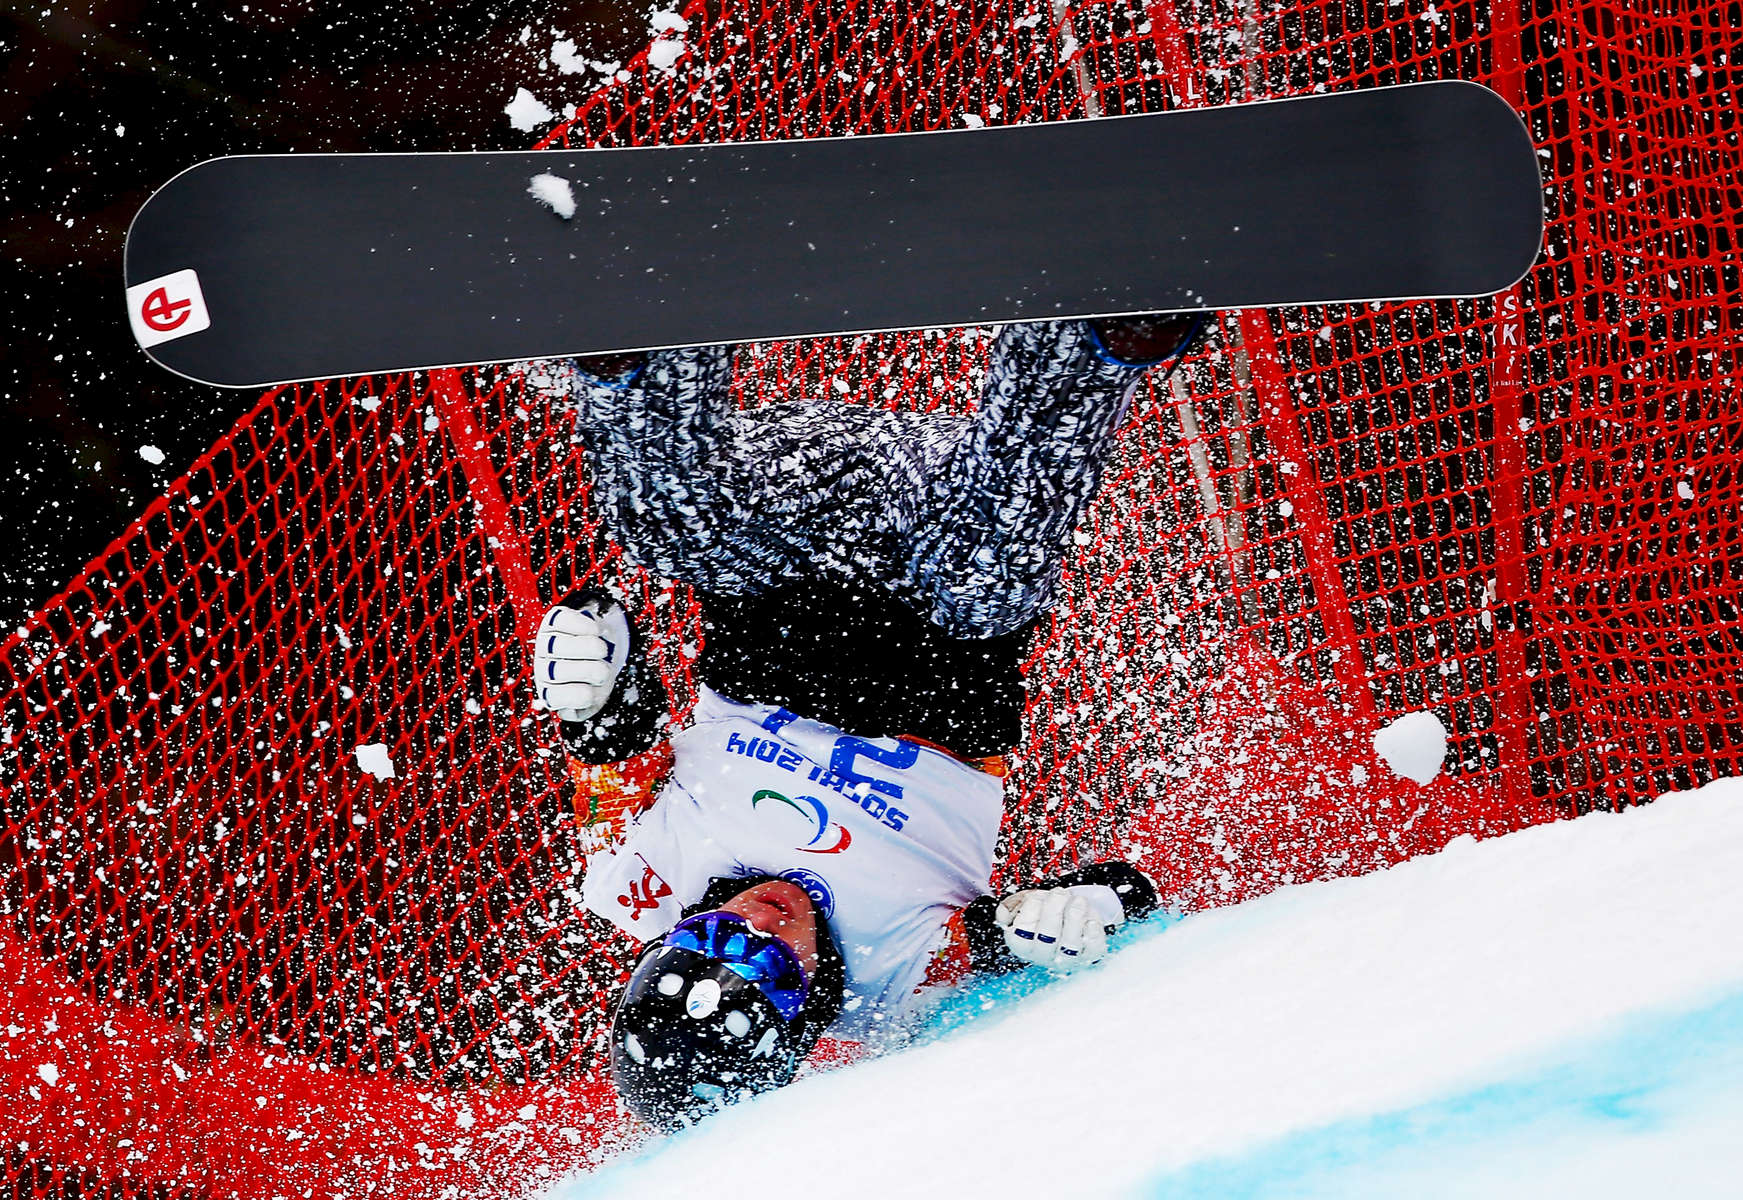 SOCHI, RUSSIA - MARCH 14: Matti Suur-Hamari of Finland crashes during the Men's Para Snowboard Cross Standing on day seven of the Sochi 2014 Paralympic Winter Games at Rosa Khutor Alpine Center on March 14, 2014 in Sochi, Russia.  (Photo by Tom Pennington/Getty Images)